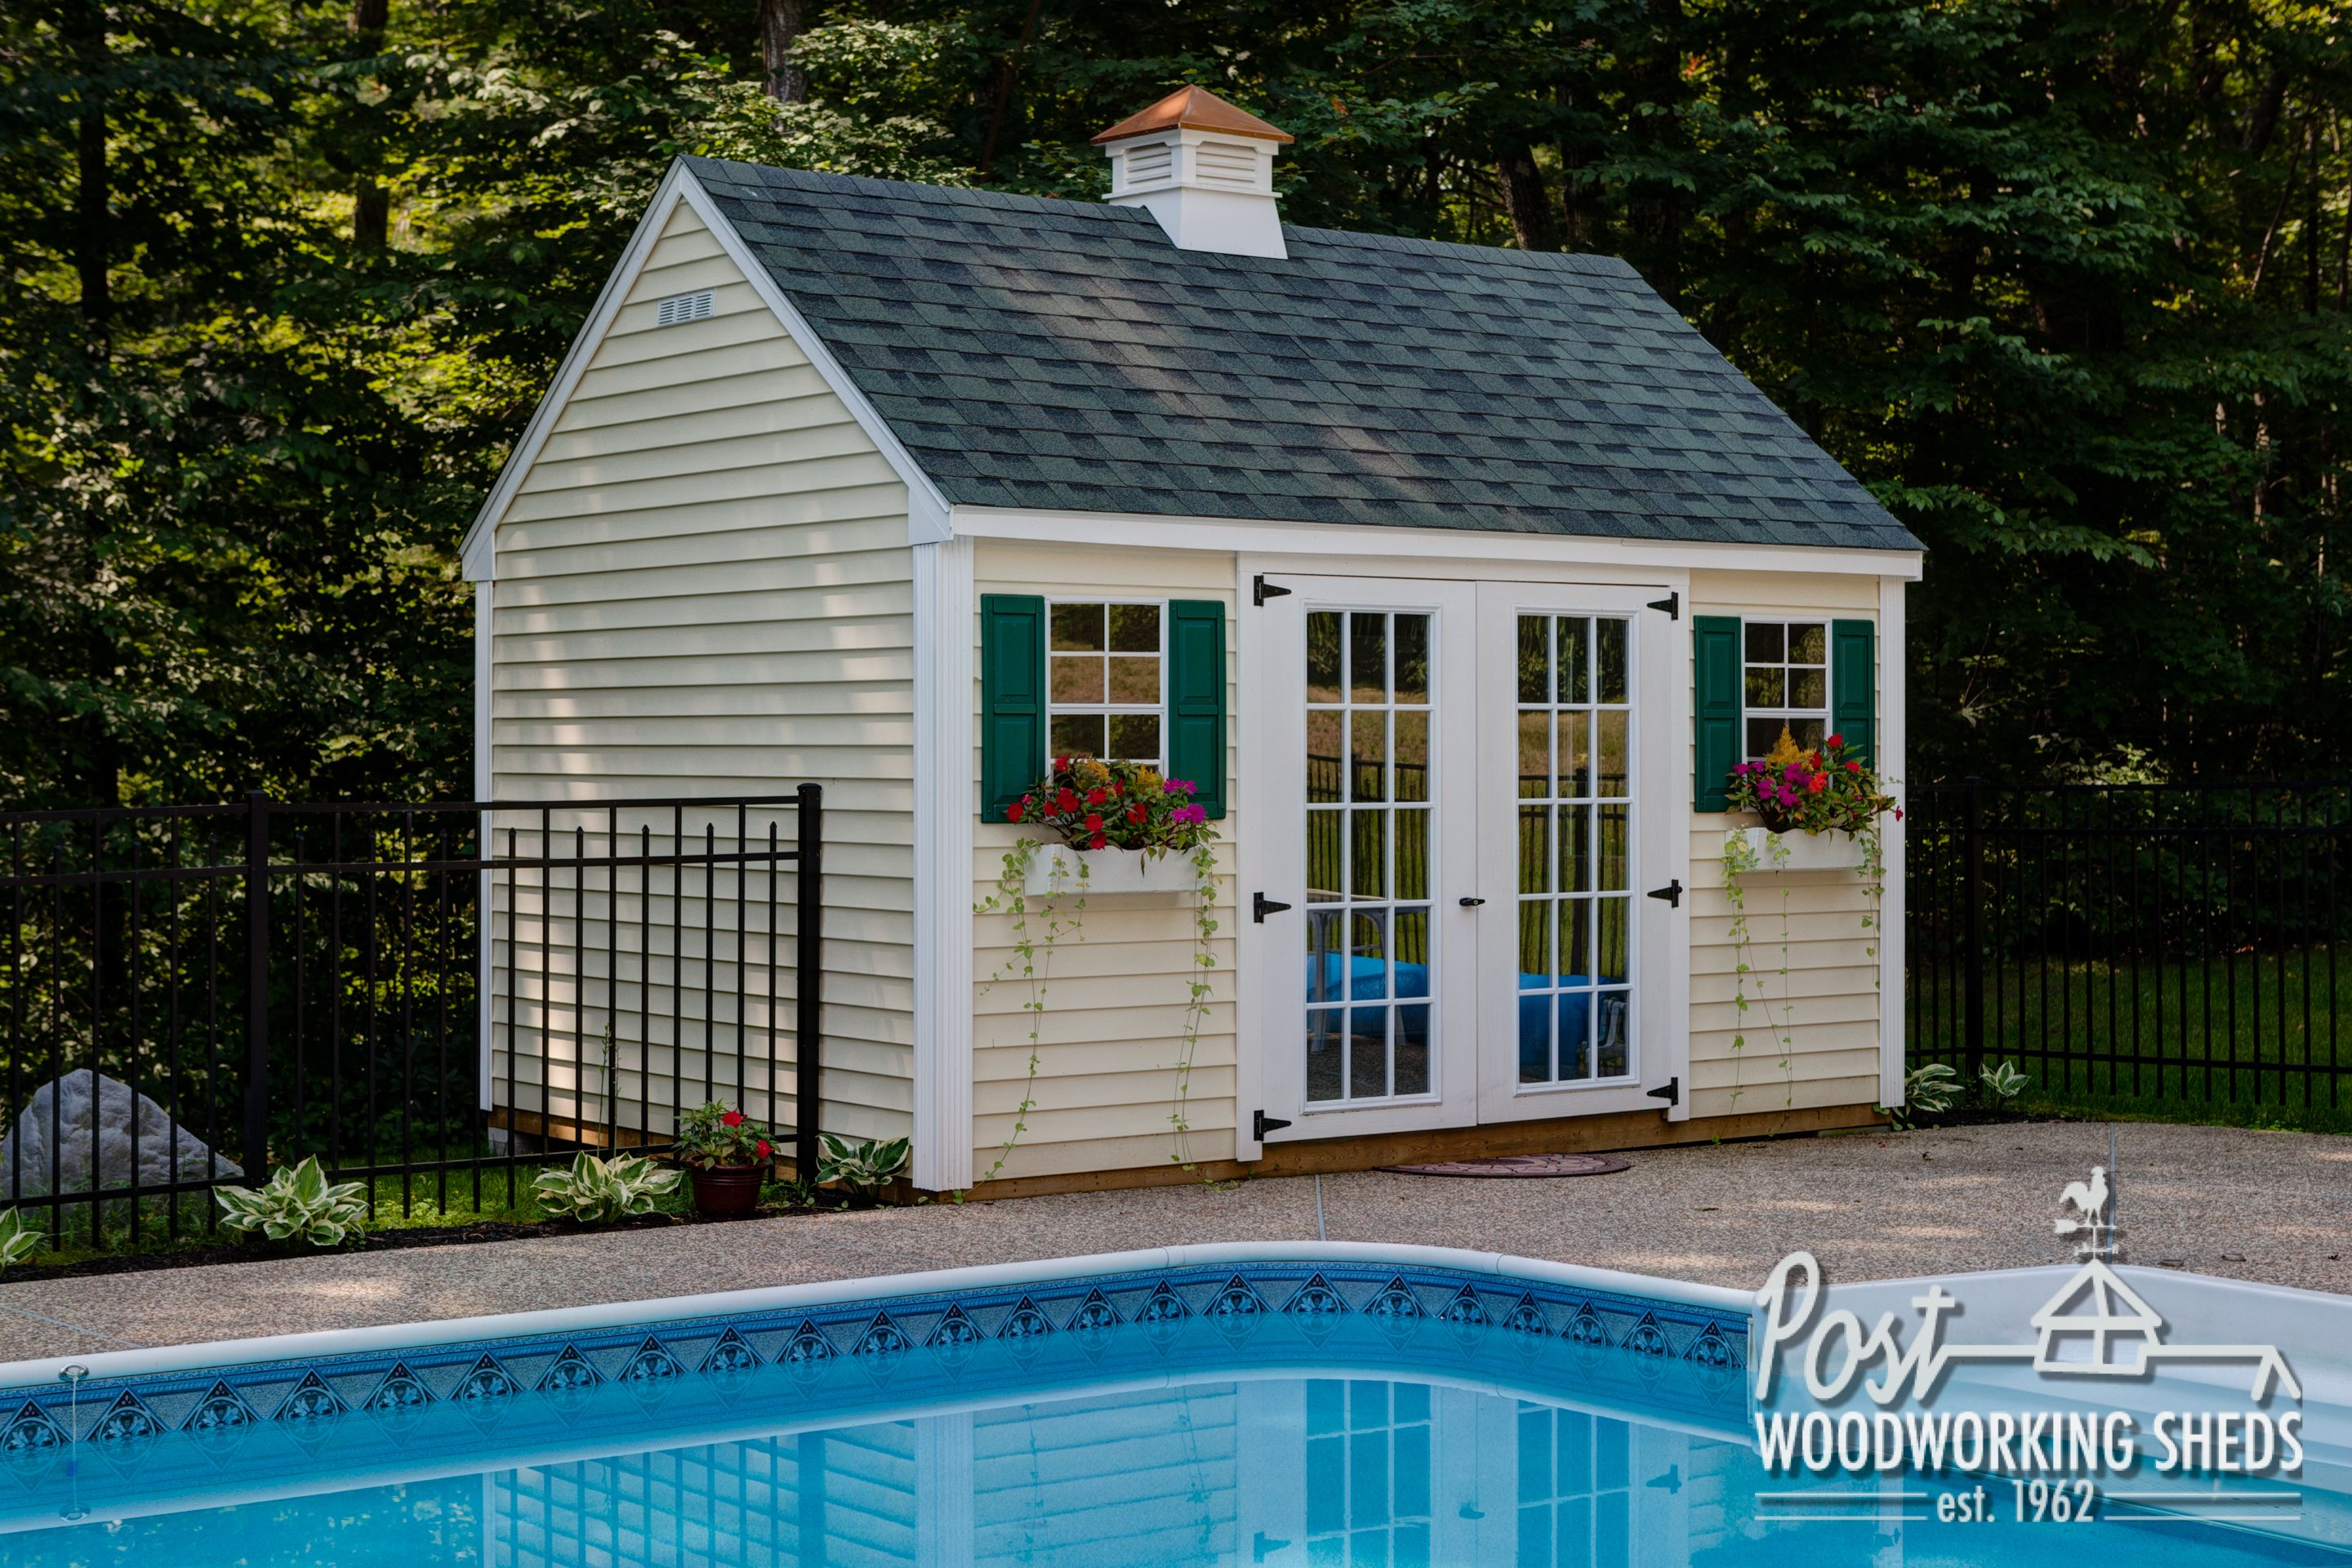 Lexington pool shed with cupola post woodworking sheds for Garden pool sheds